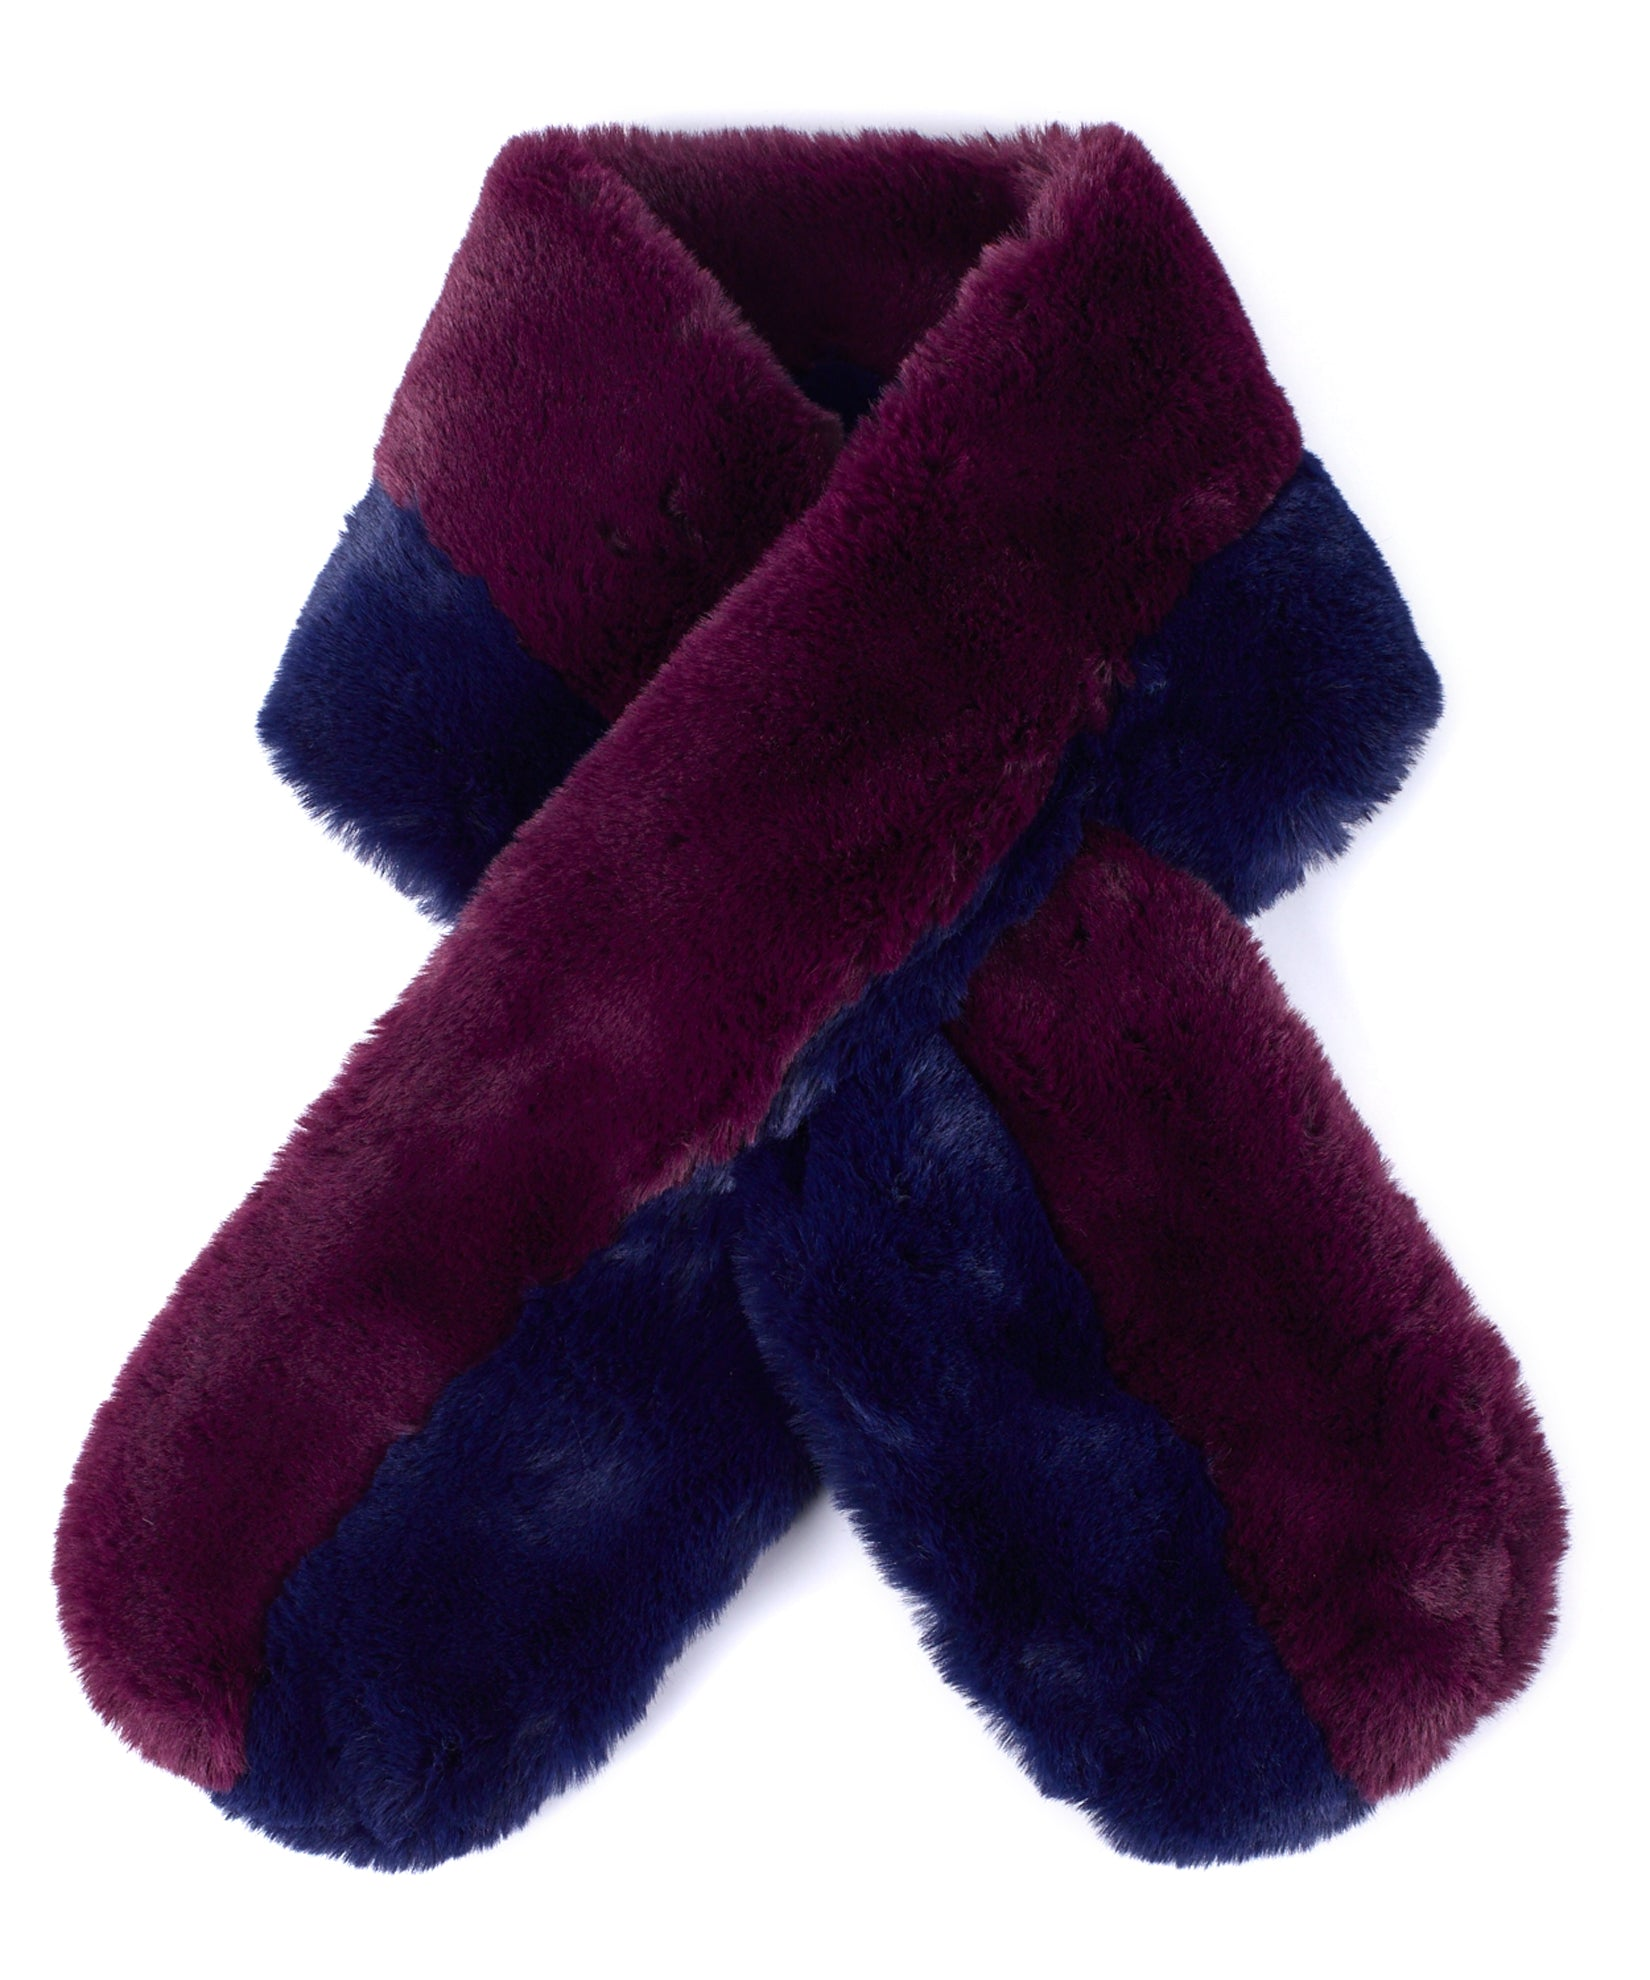 Pickled Beet - Pull Through Faux Fur Colorblock Stole